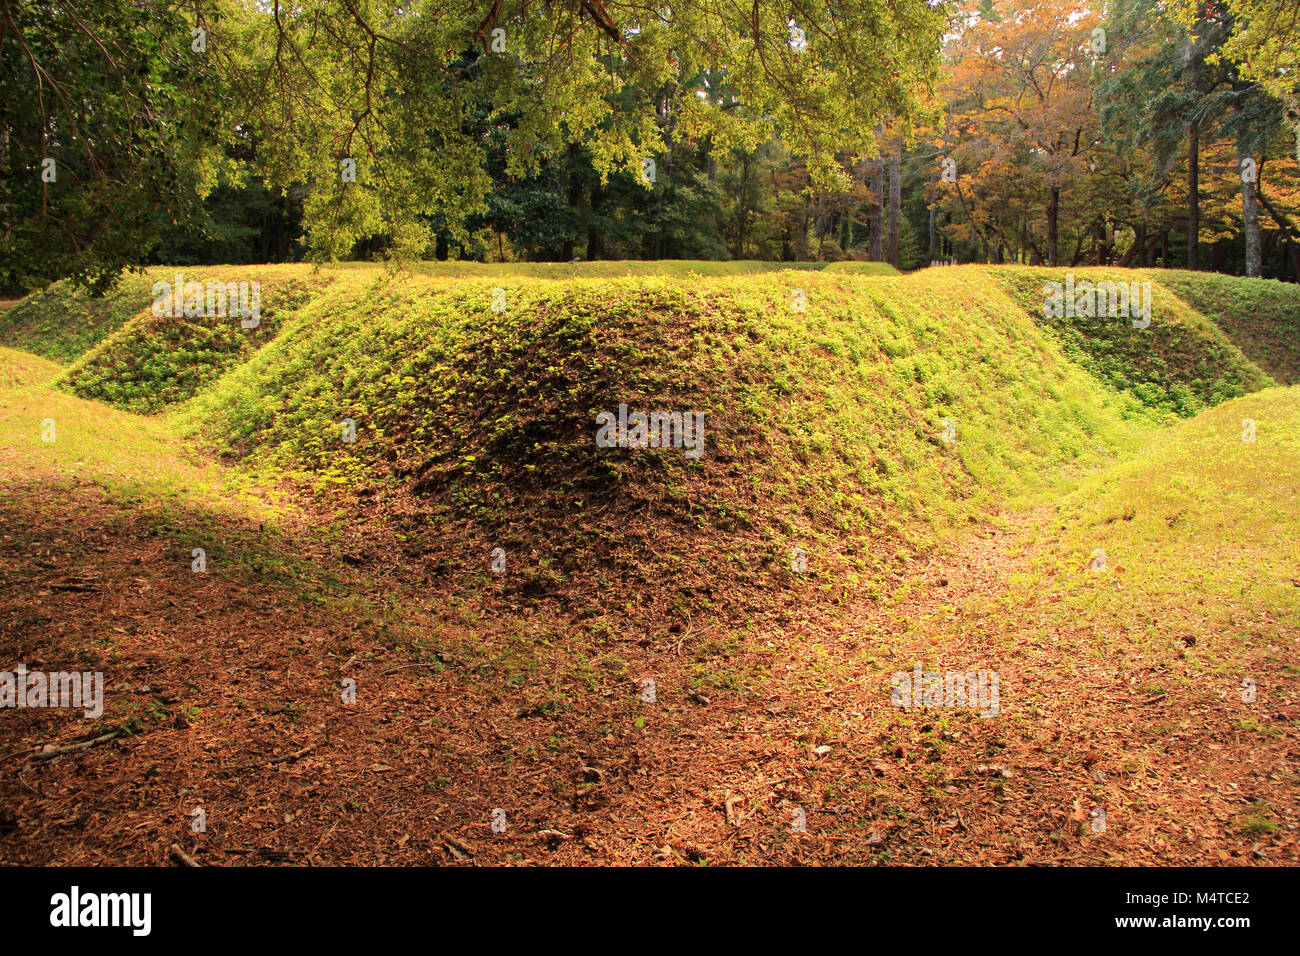 Reconstructed Earthen Fort at the Fort Raleigh National Historic Site on Roanoke Island, North Carolina - Stock Image